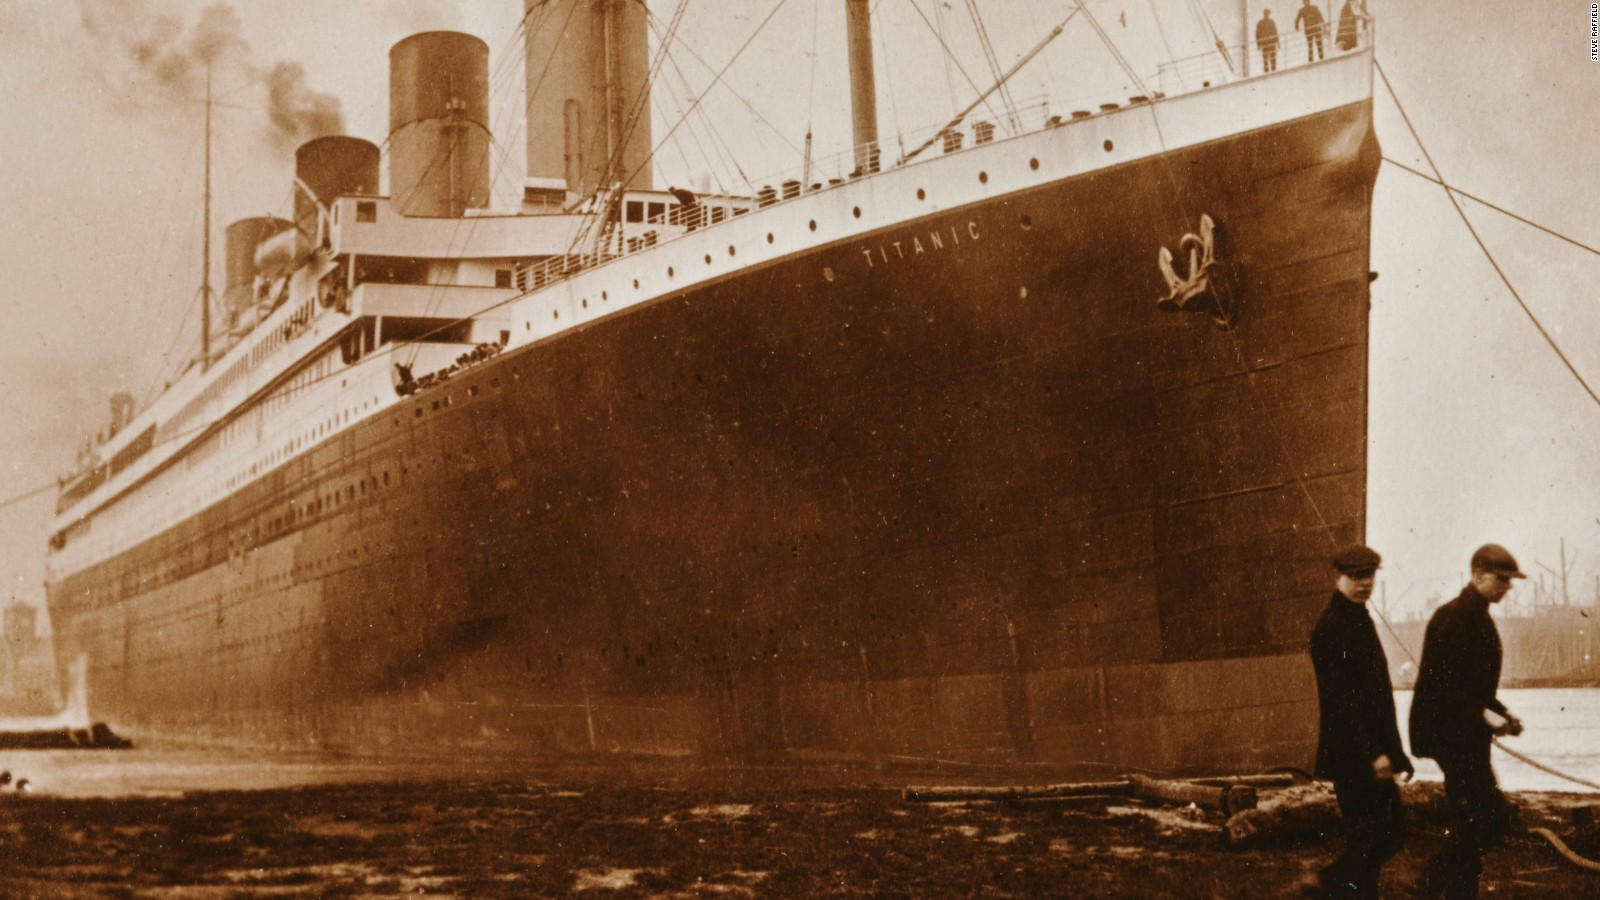 an analysis of the characteristics and the sinking of ss titanic